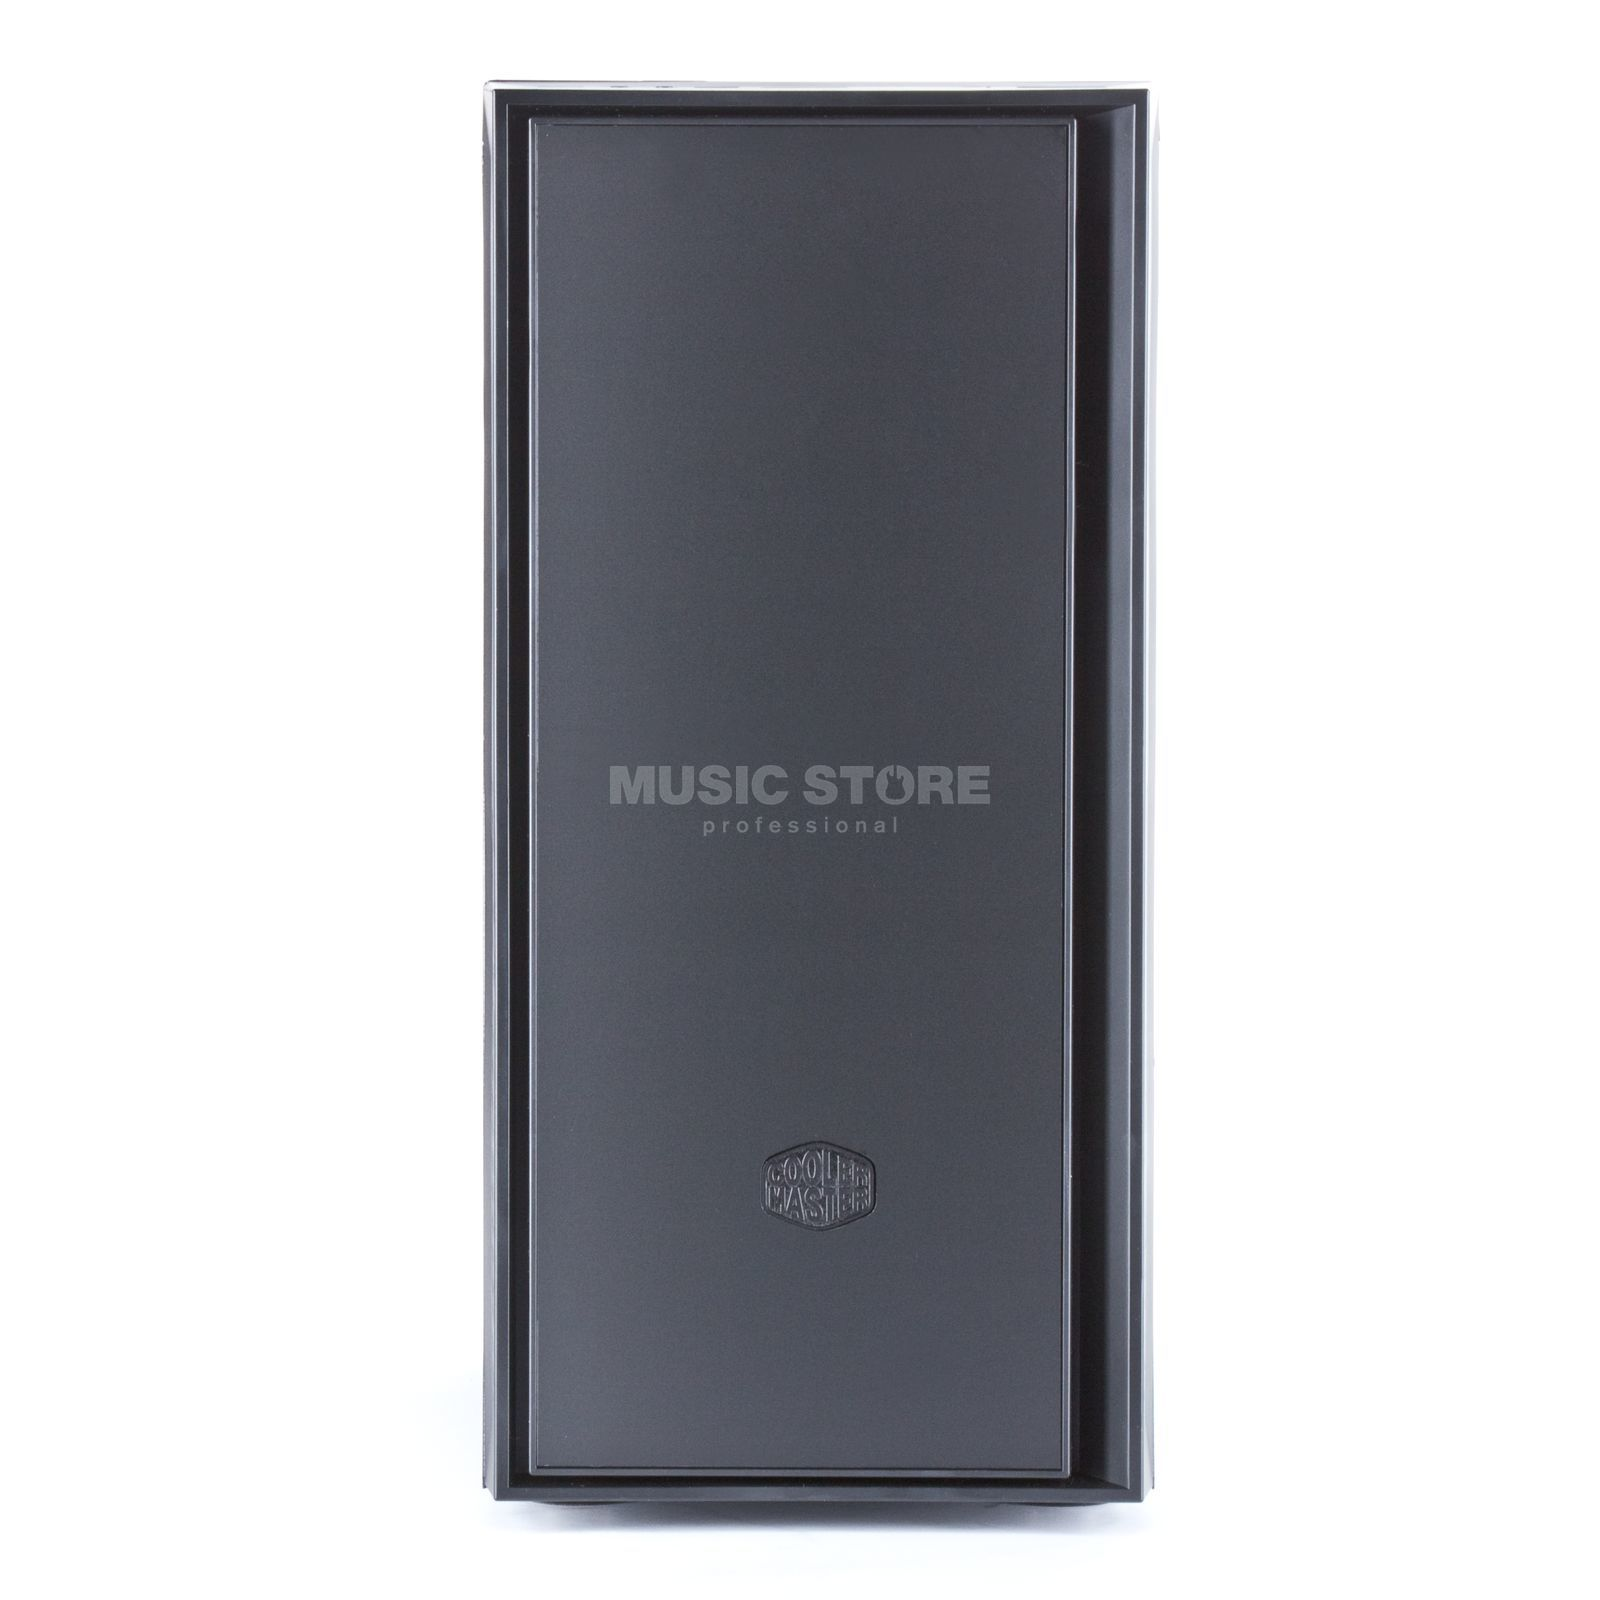 MUSIC STORE Audio PC 2016 PRO Image du produit